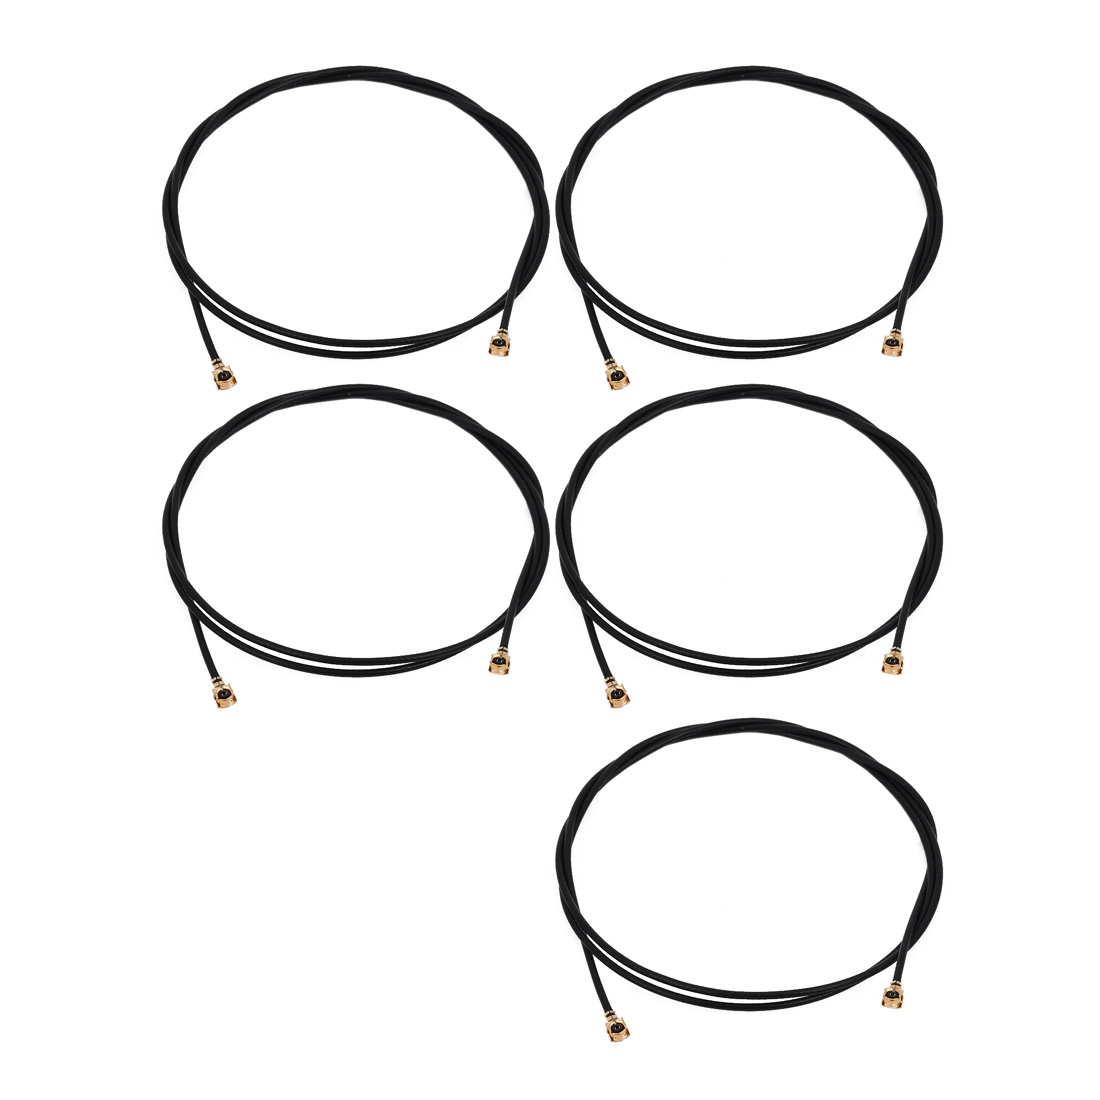 5pcs RF1.13 IPEX 1.0 to IPEX 1.0 Antenna WiFi Pigtail Cable 50cm Long for Router